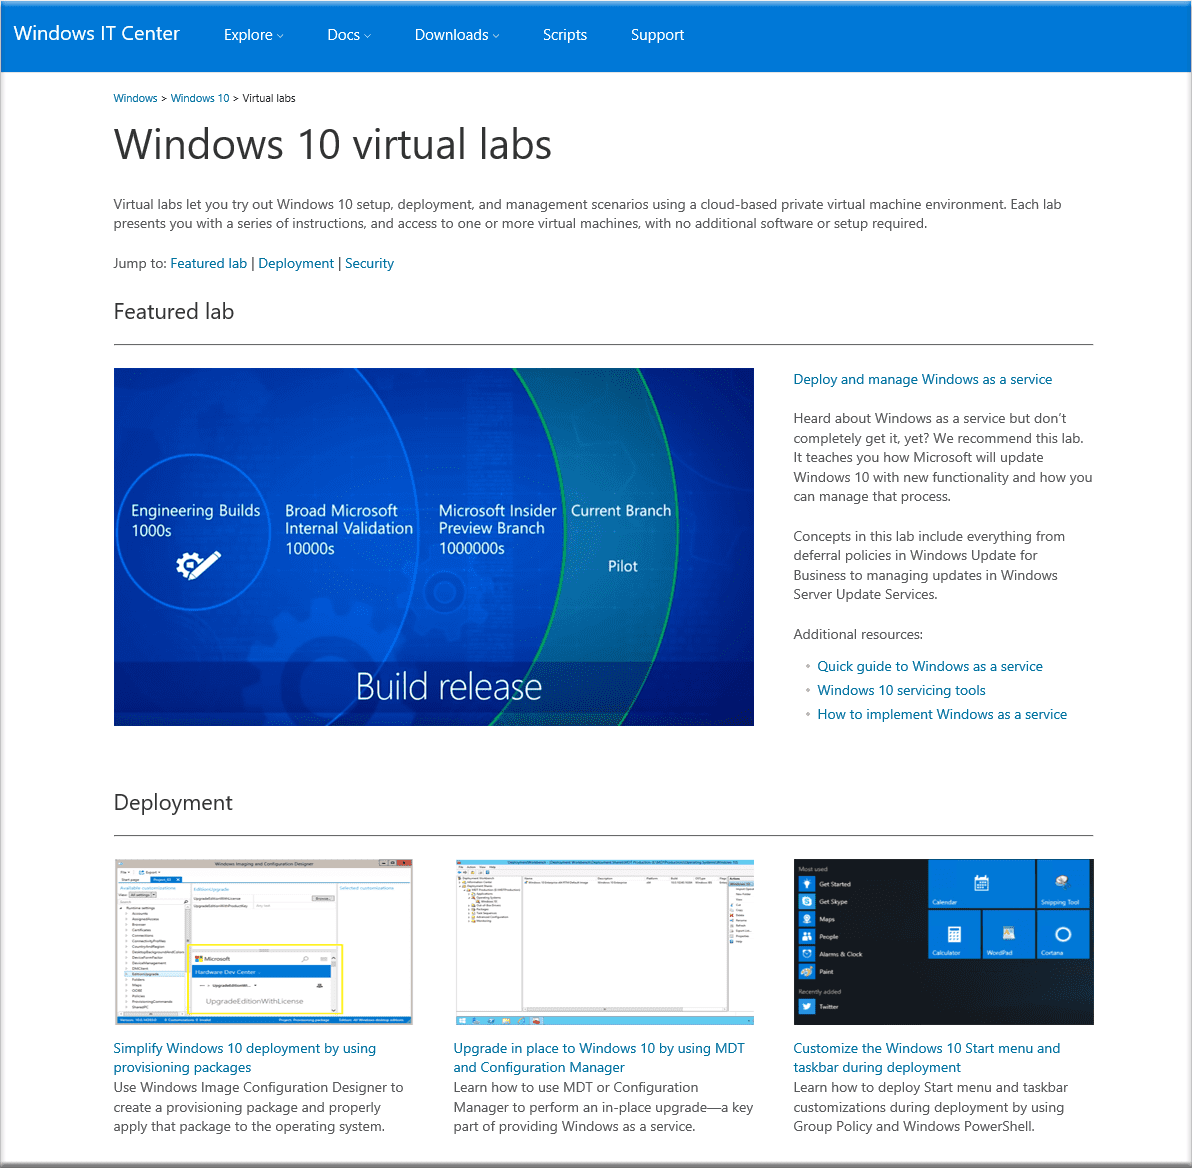 Windows 10 Virtual Labs